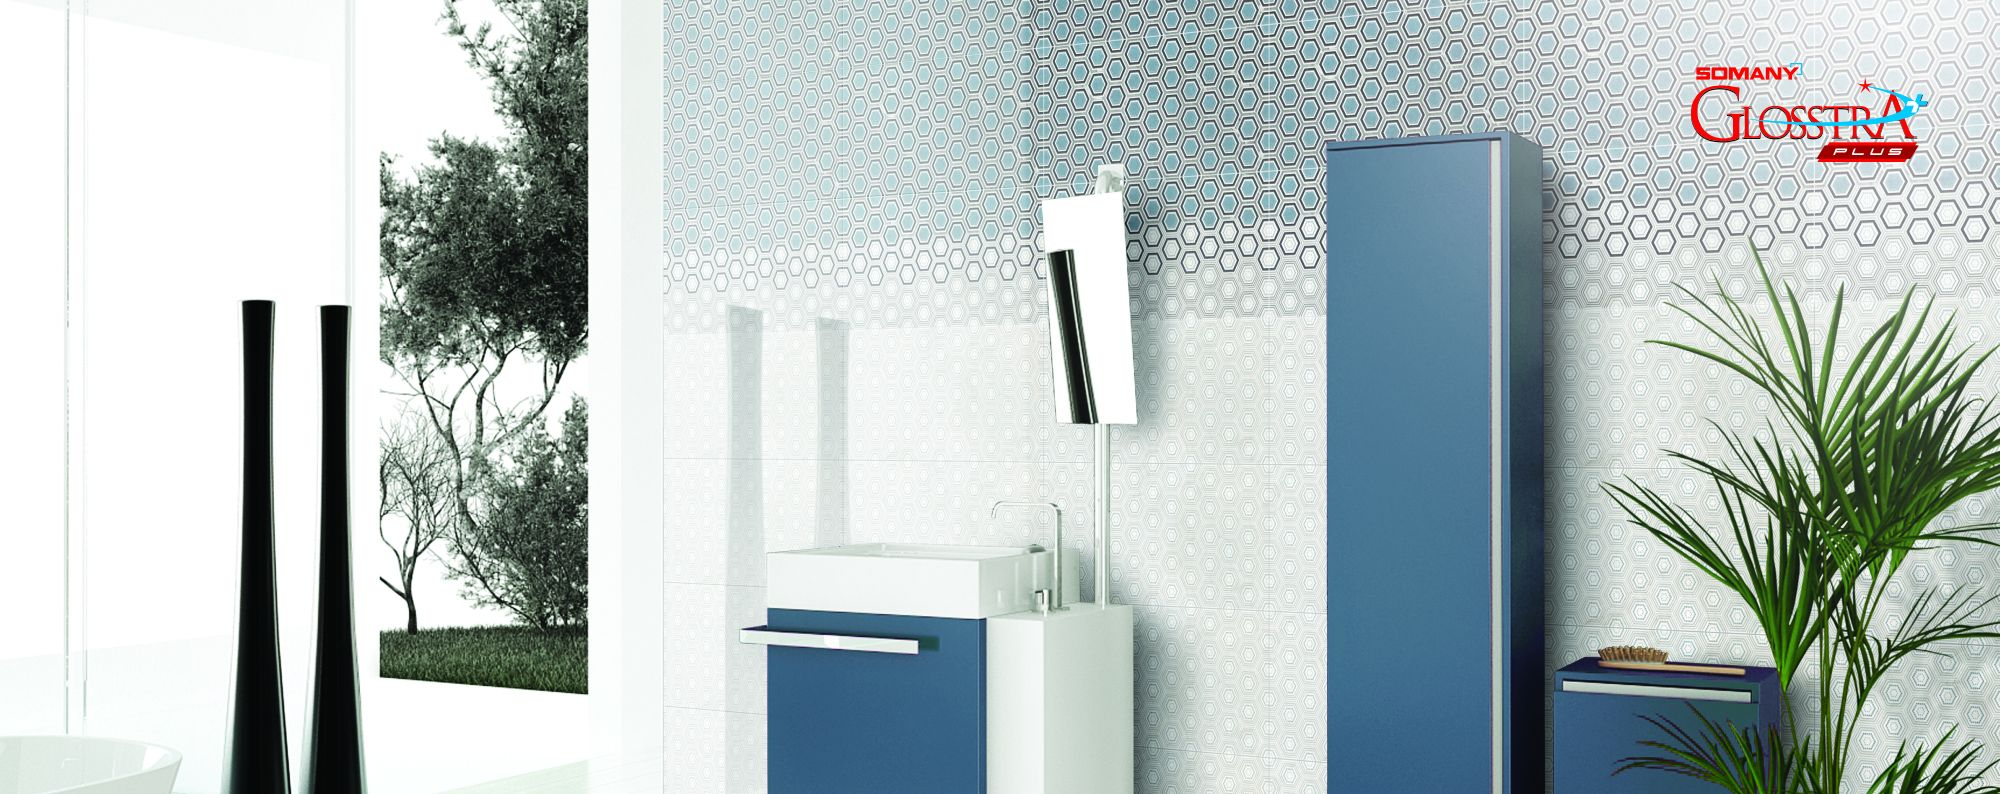 Collection Of Ceramic Wall Tiles Design In India Somany Ceramics